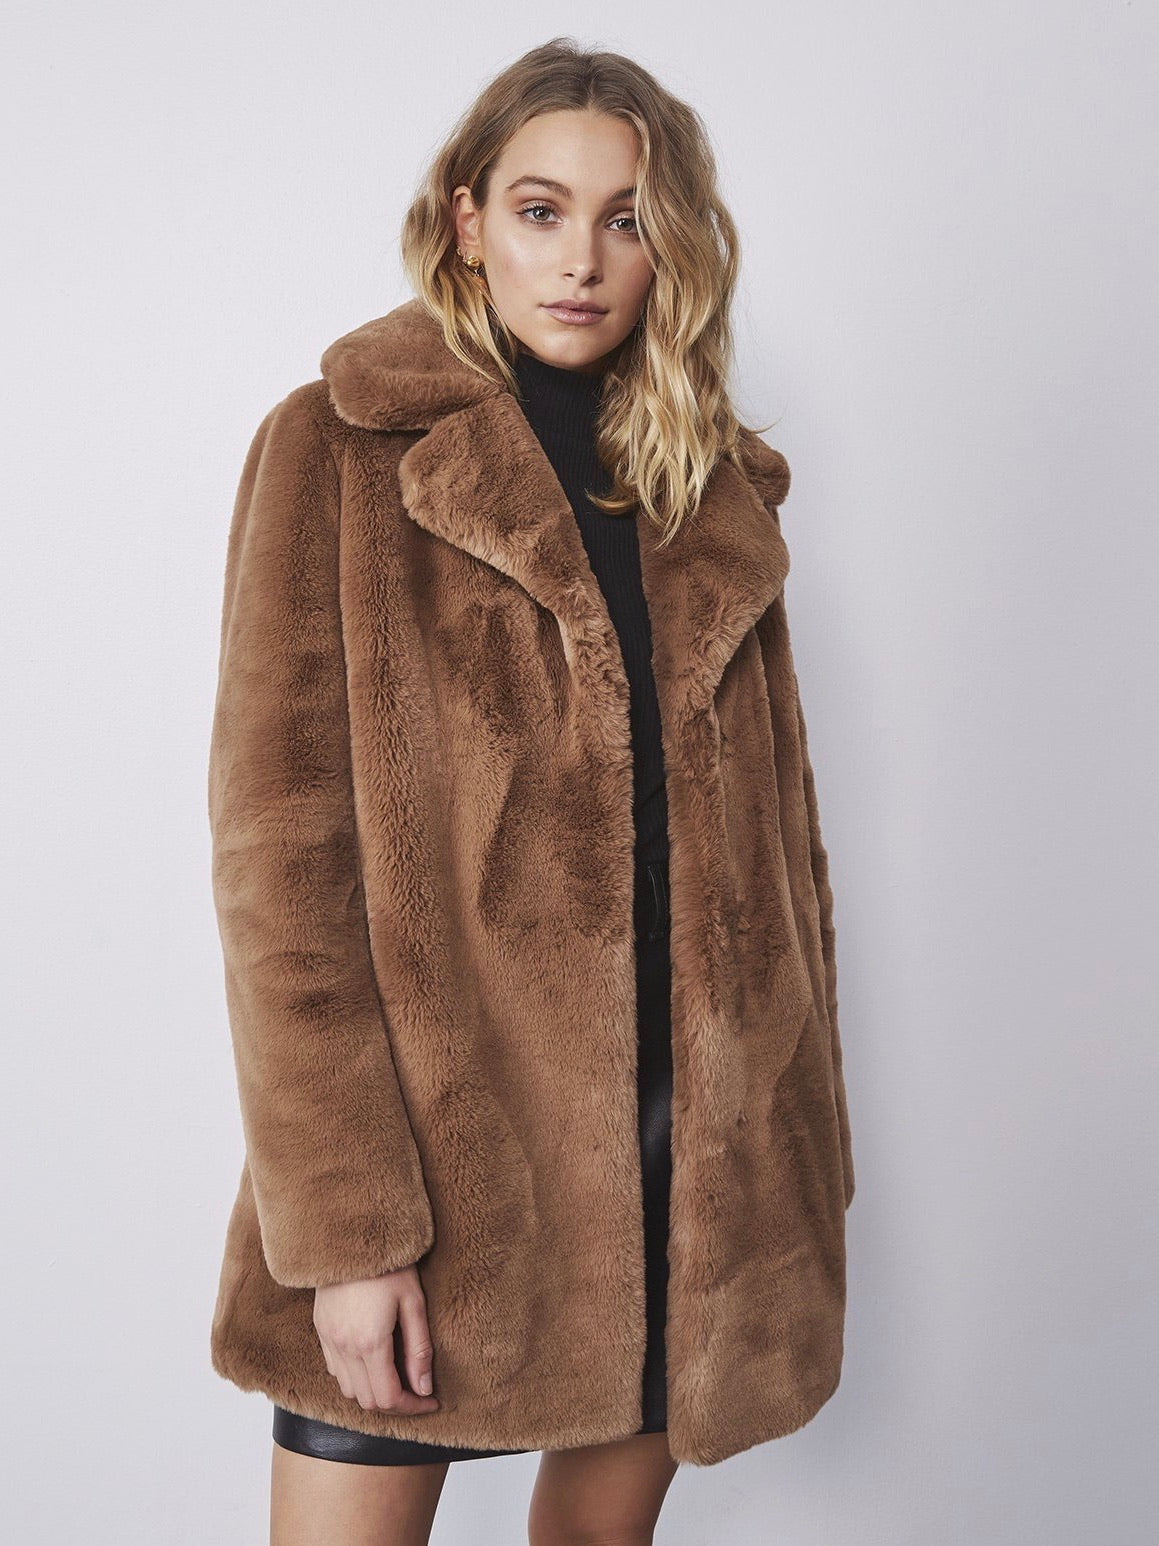 Minimalist Faux Fur Jacket - Tiger Eye